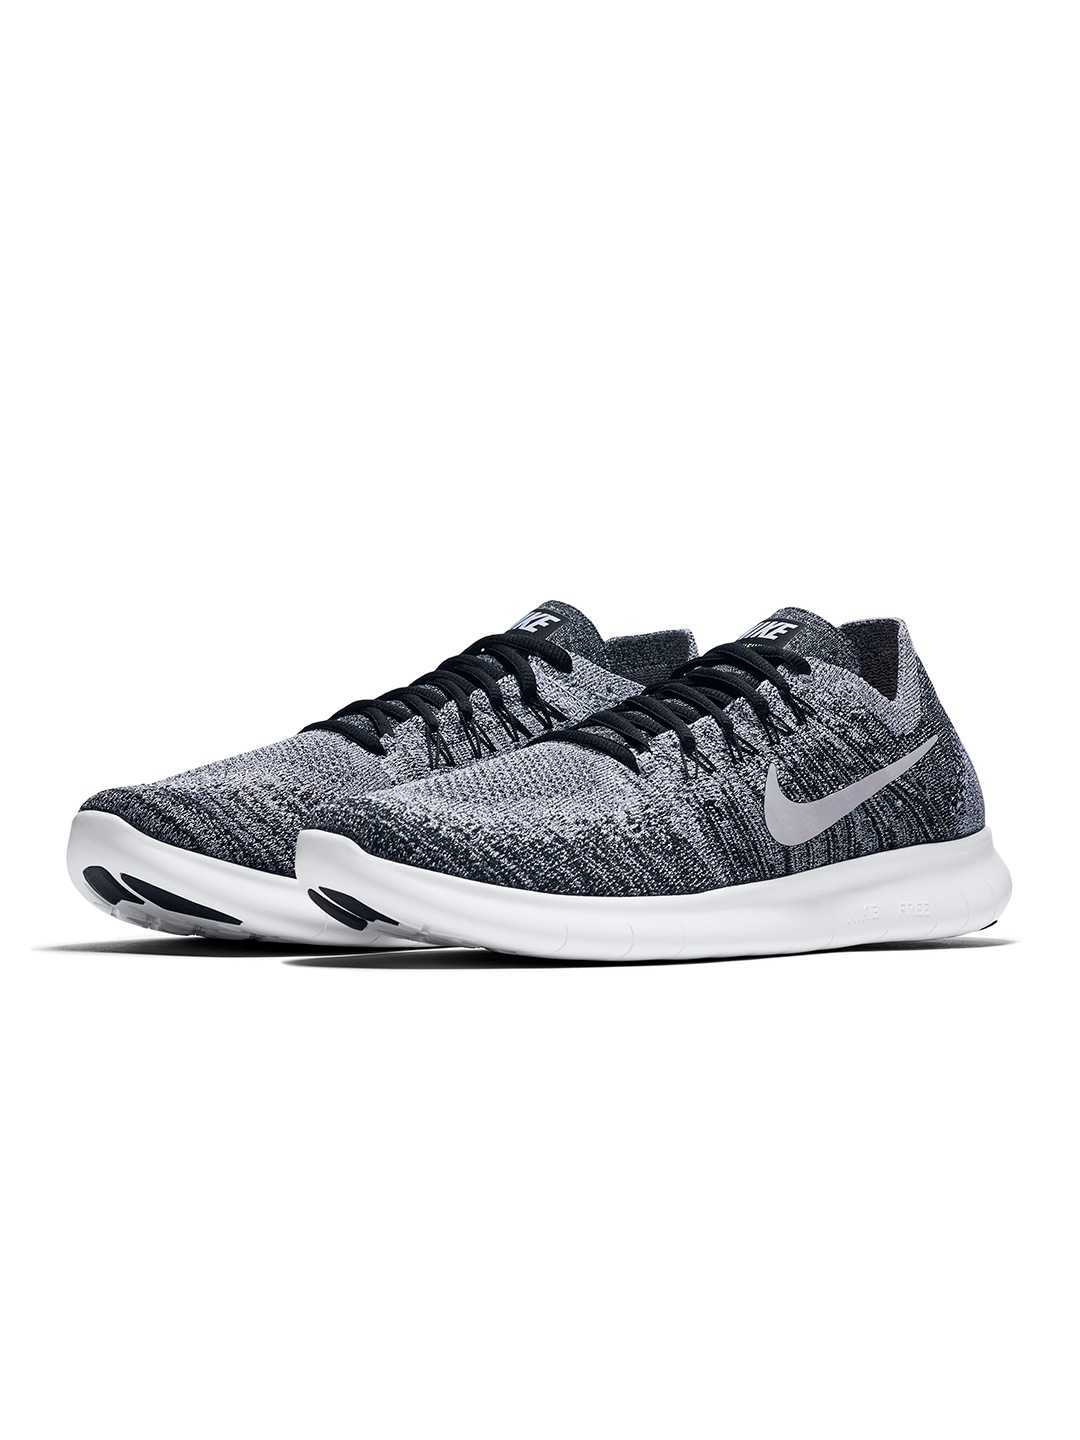 37ed71e026a19 ... netherlands nike men charcoal grey free rn flyknit 2017 running shoes  price in india 398b9 1ad71